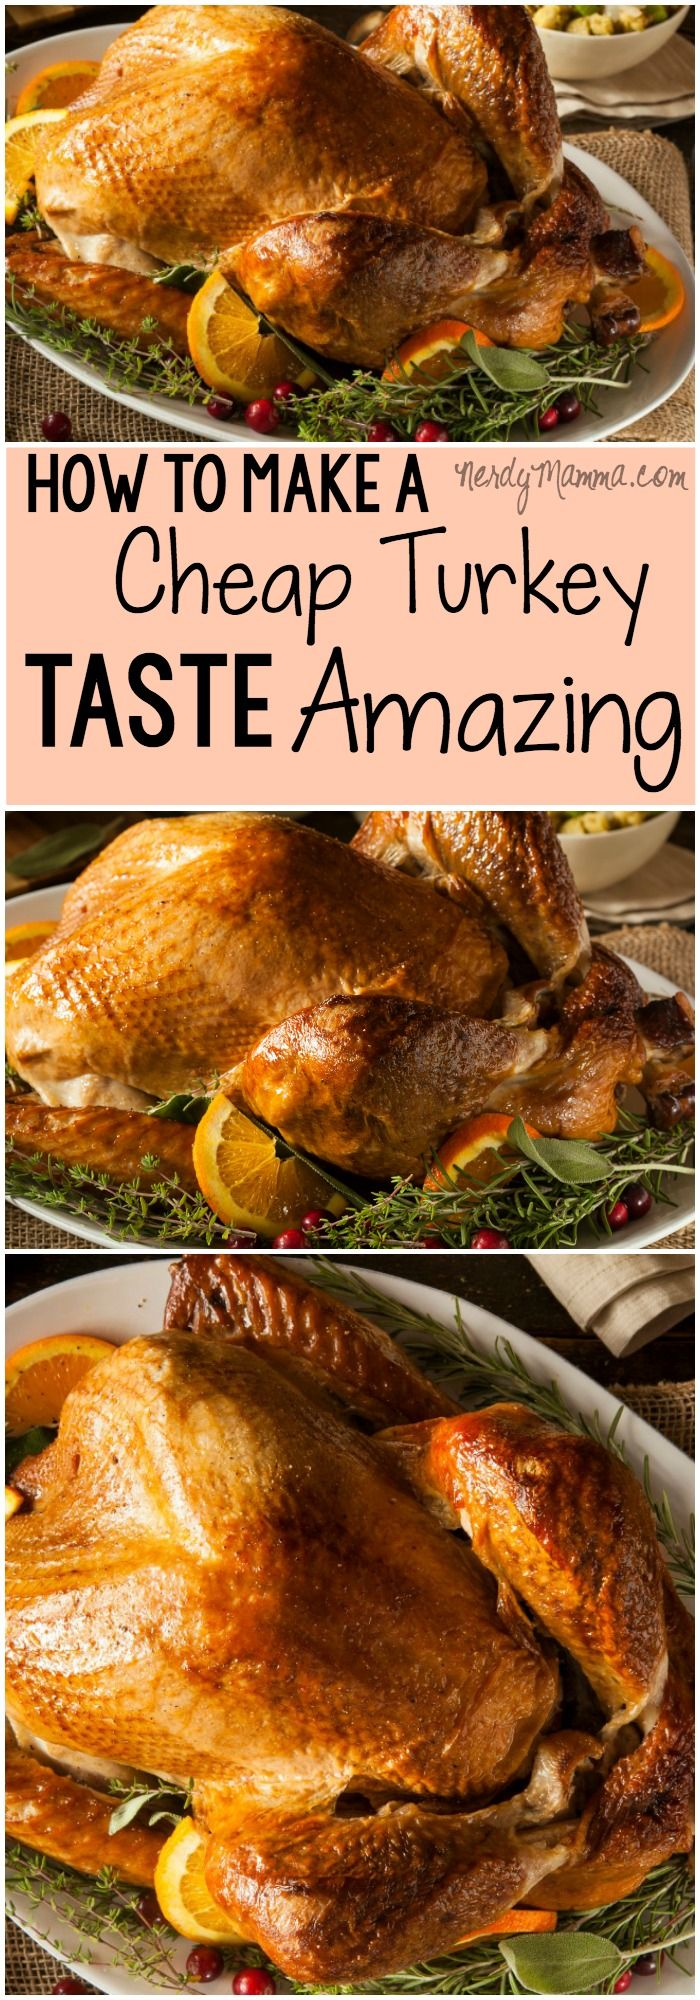 I love this recipe for making a cheap turkey taste awesome. Its so simple and sounds great! #Thanksgiving #Turkey #CheapMeals #ThanksgivingRecipe #ThanksgivingDinner